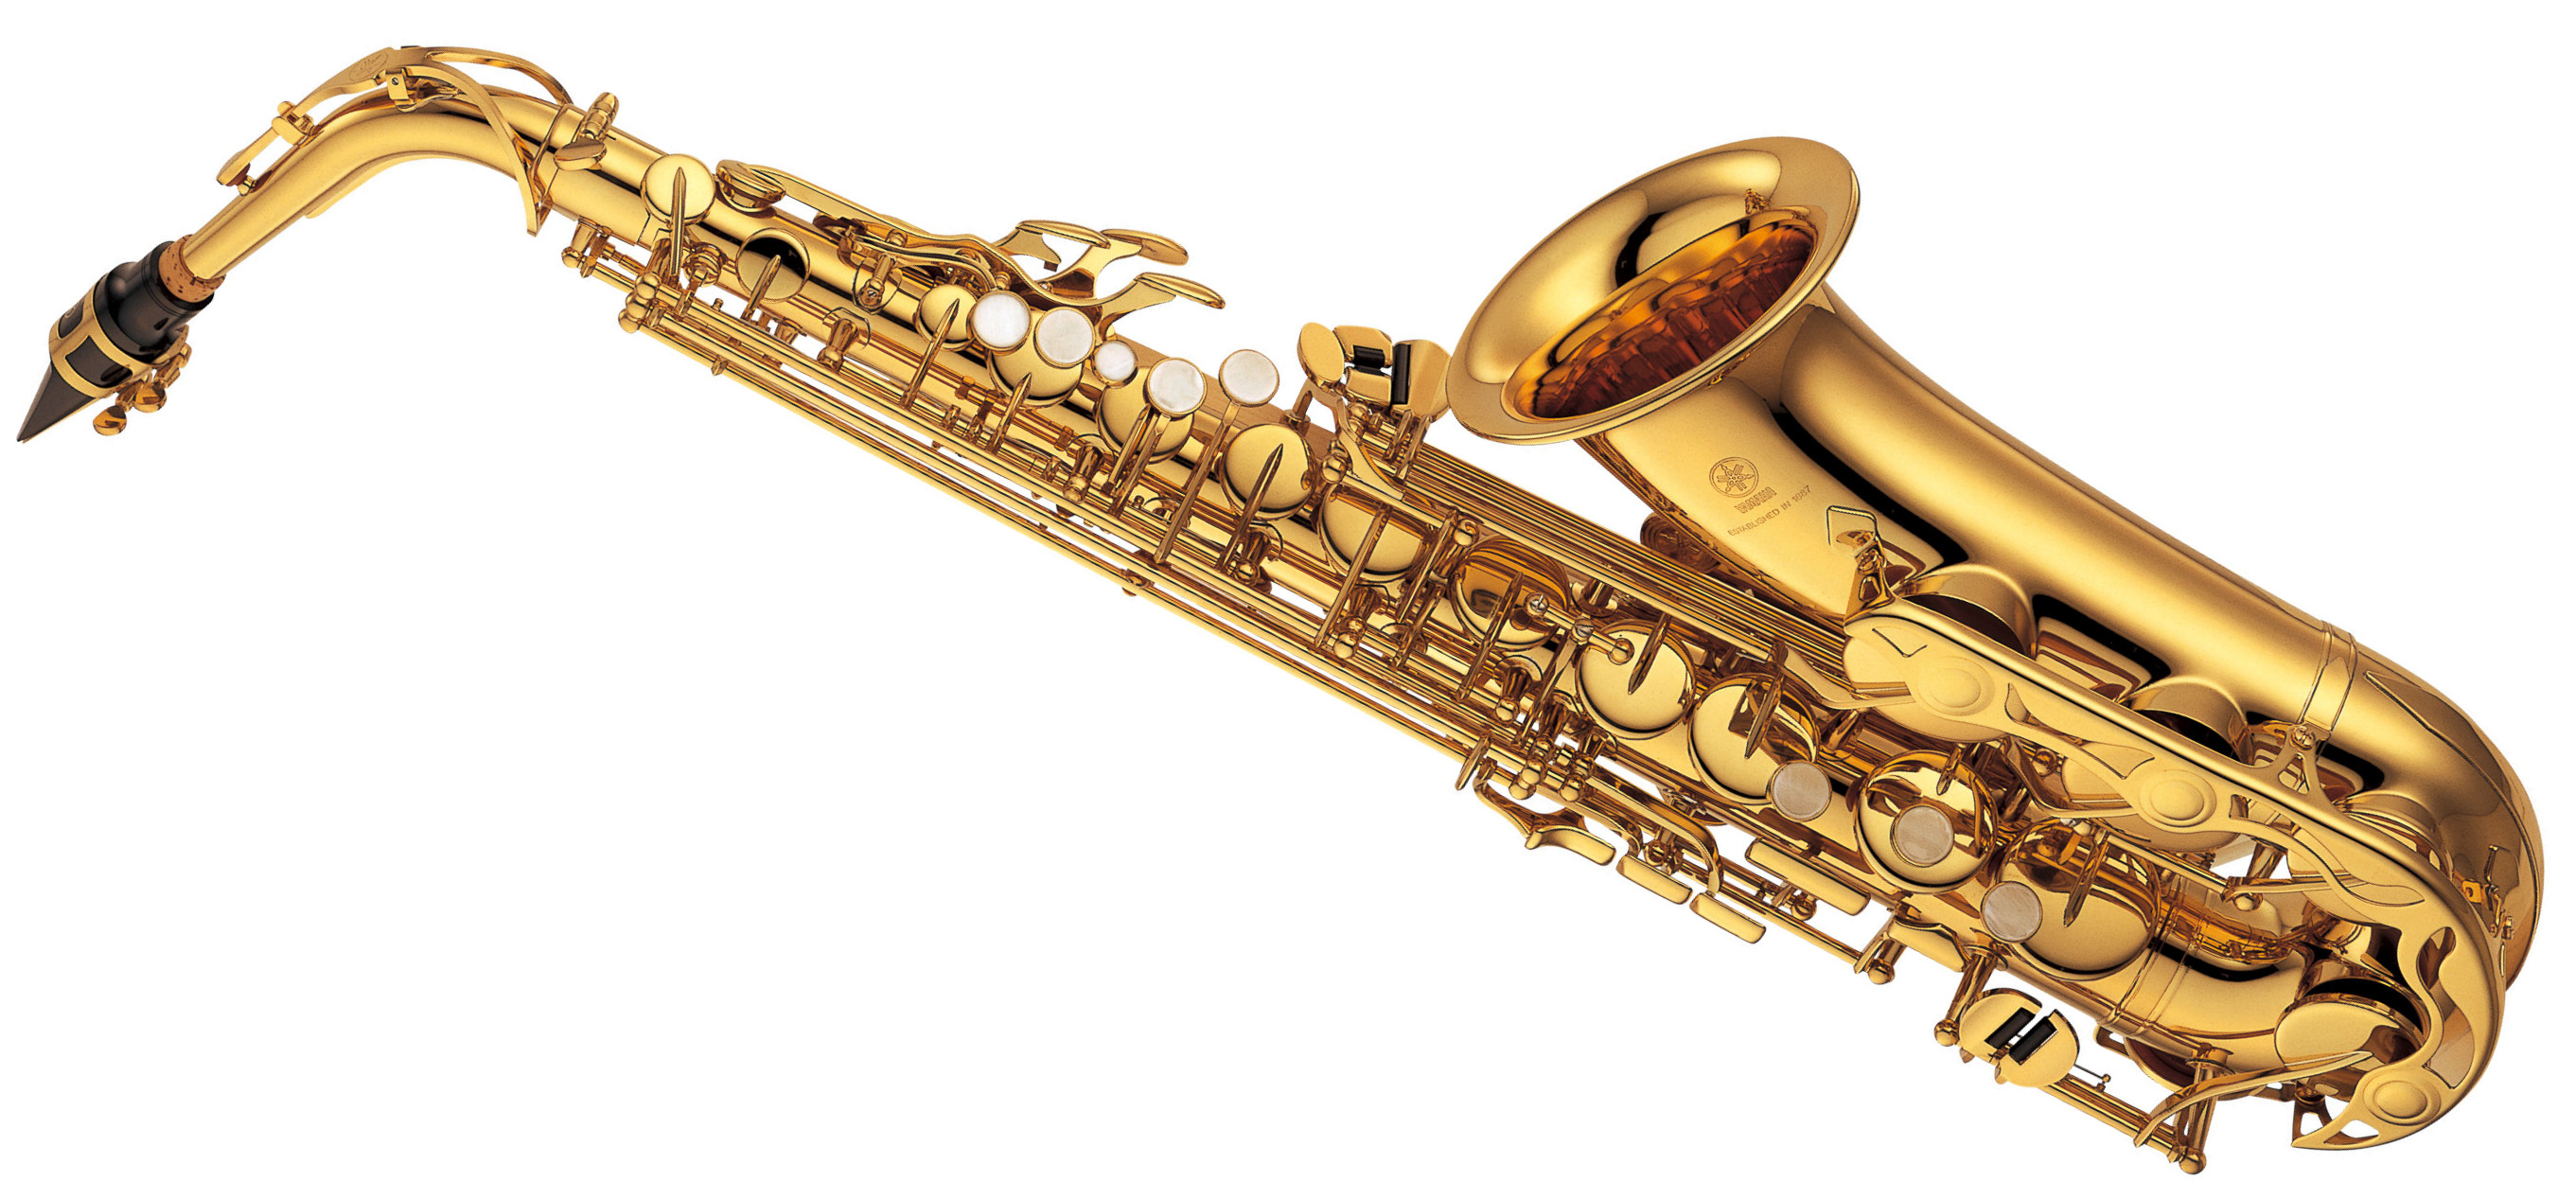 HQ Saxophone Wallpapers   File 727.88Kb